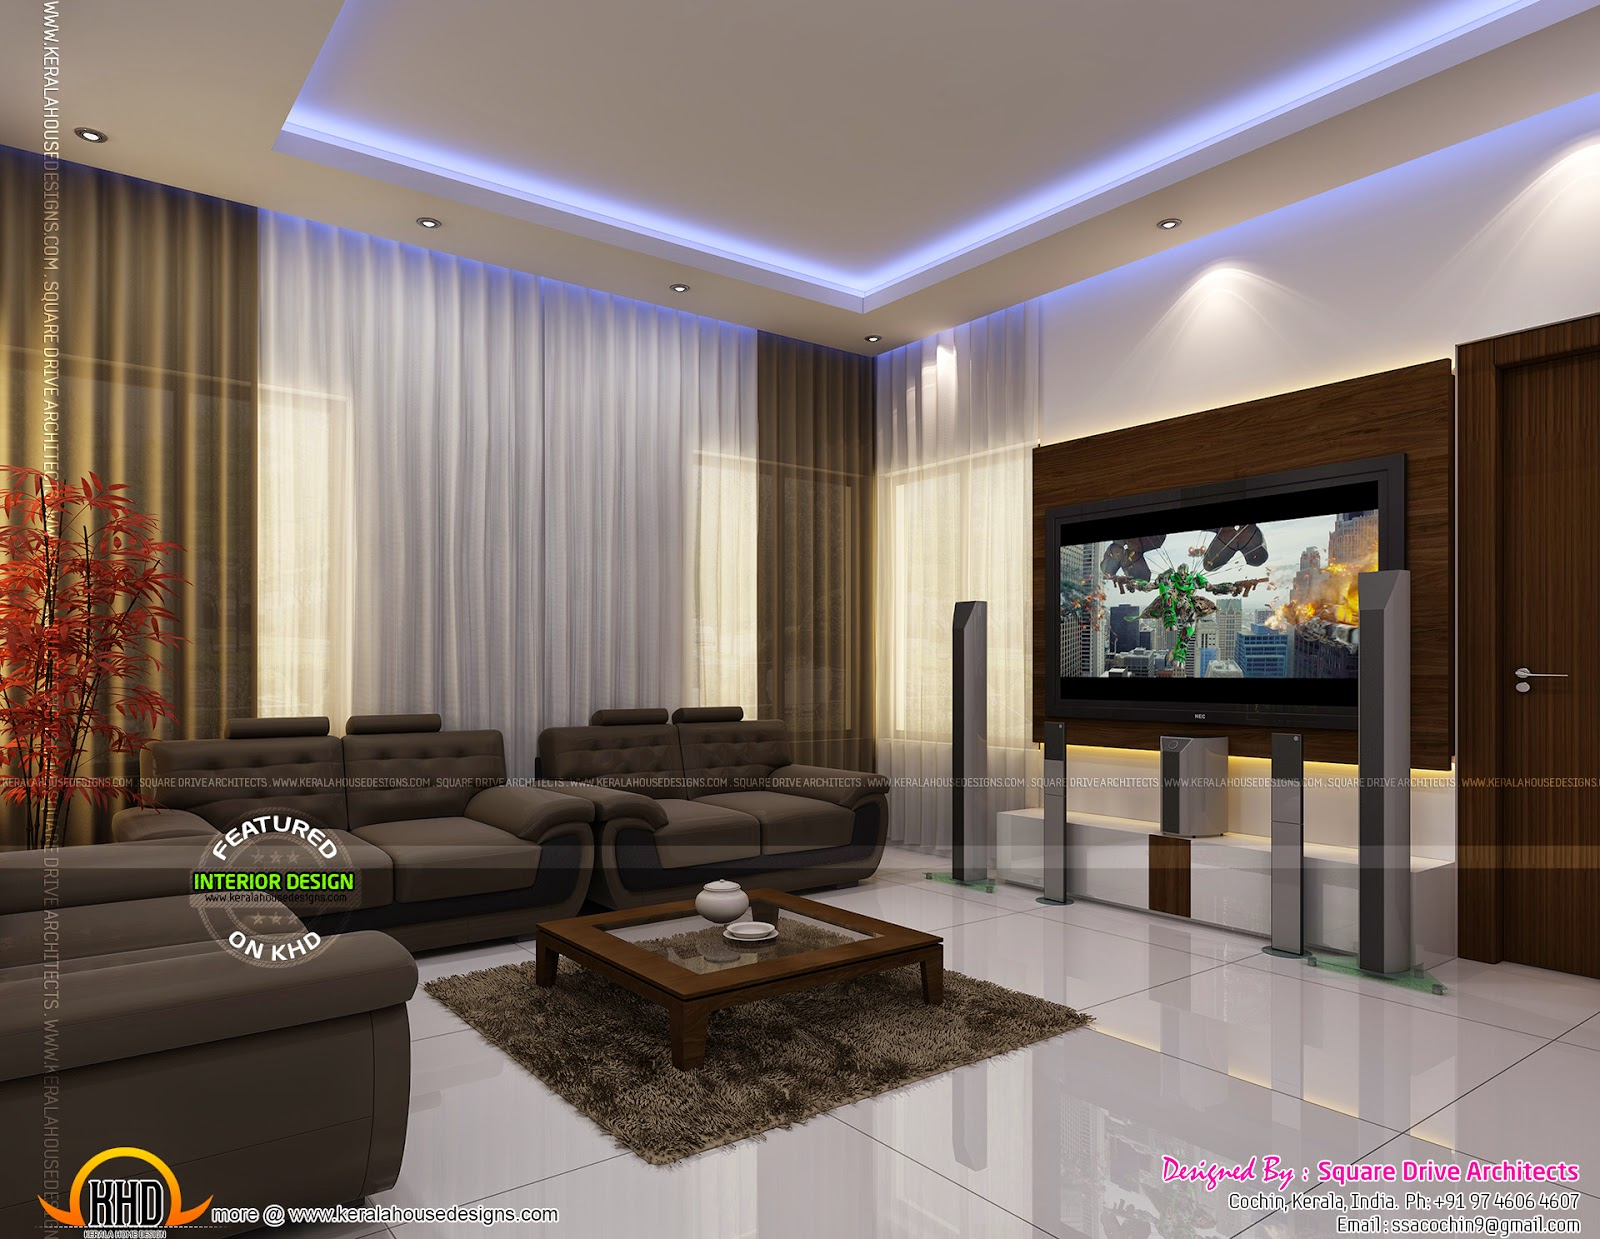 Home interiors designs kerala home design and floor plans for Room interior design images